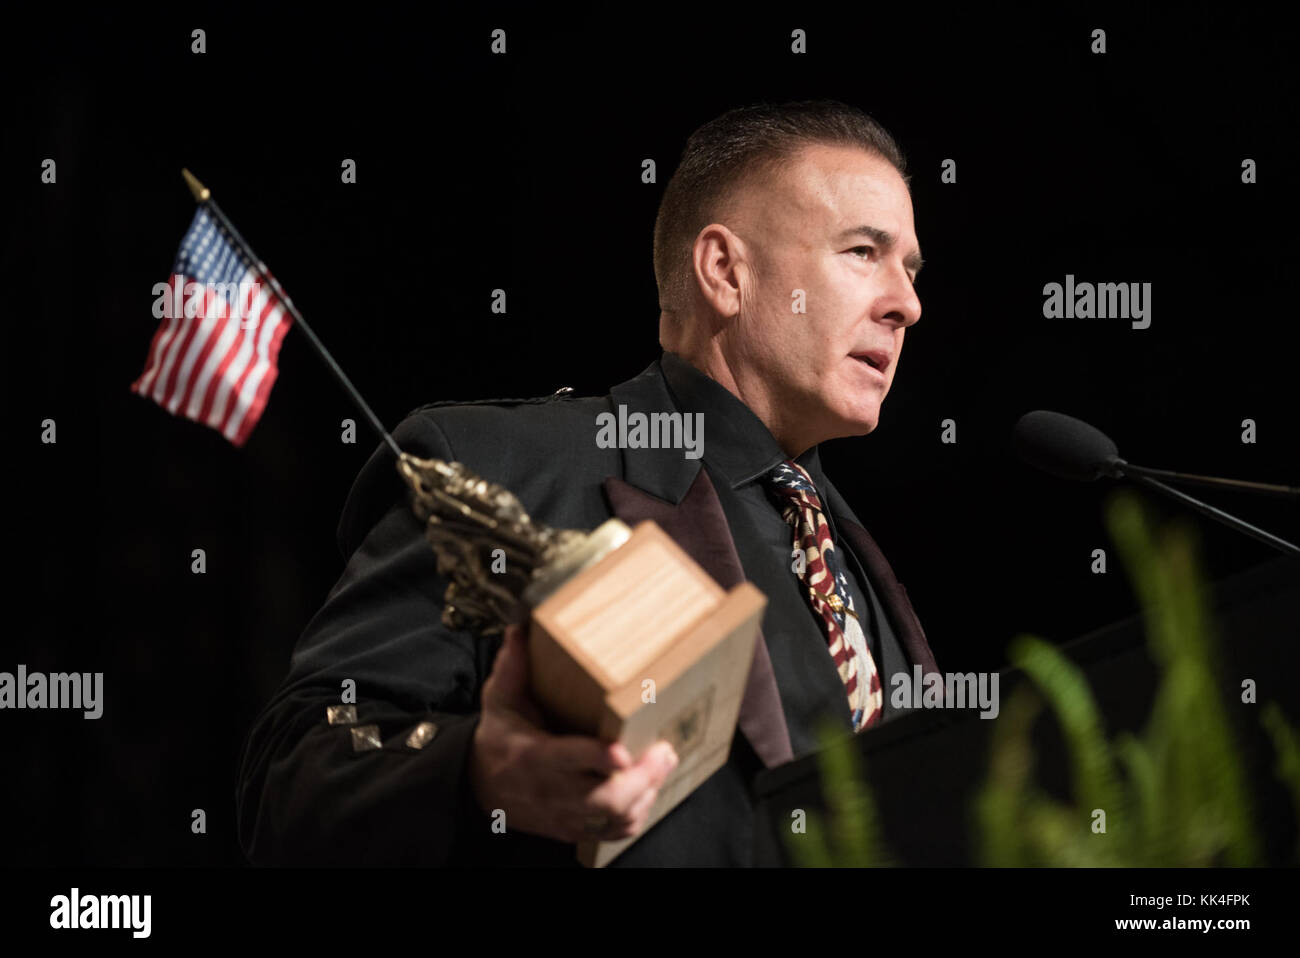 Former U.S. Marine Sgt. Dan Clark speaks after being presented the Lt. Col. William F. Degan Semper Fidelis Award - Stock Image